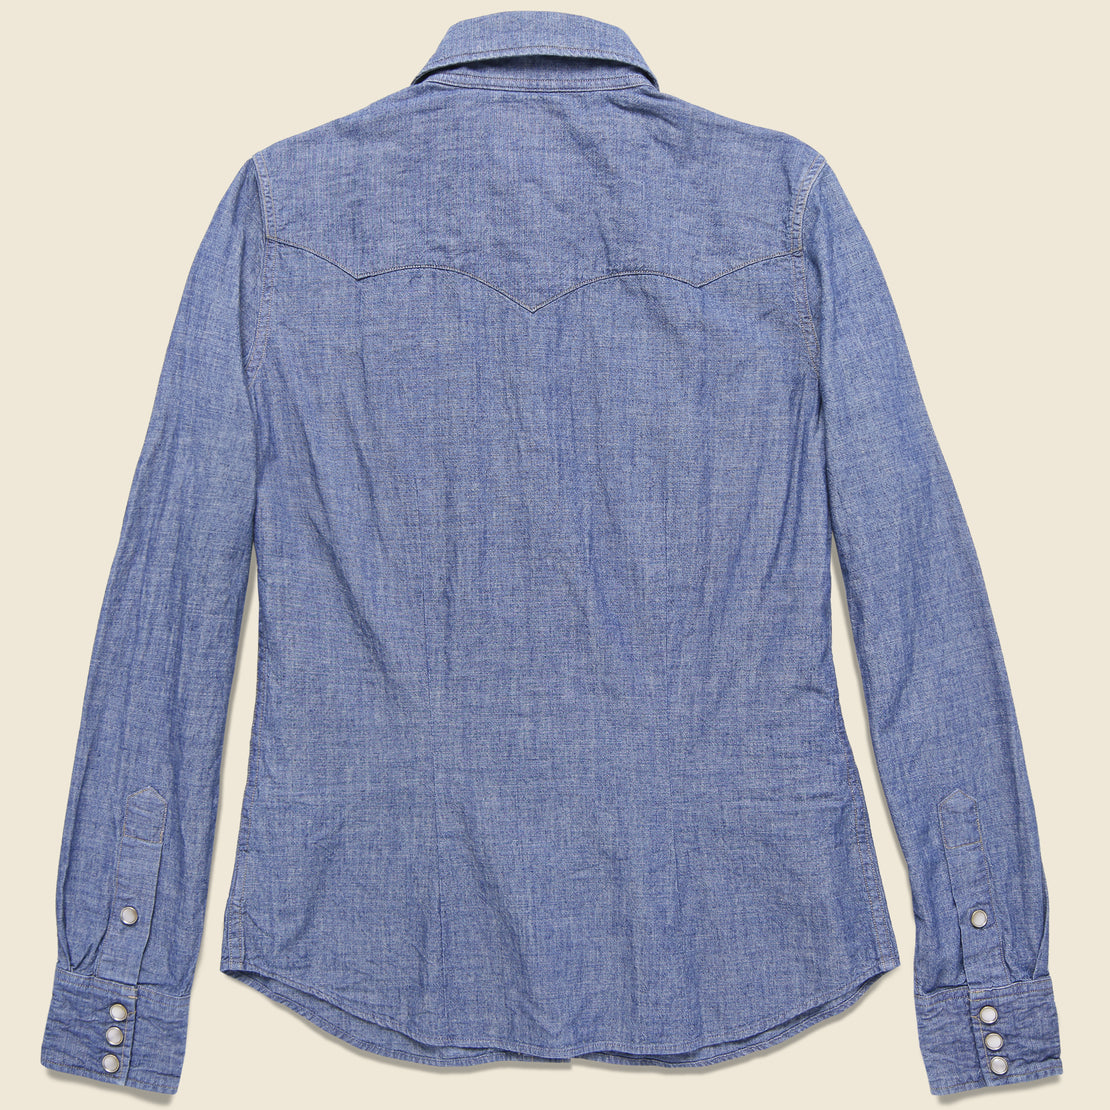 Buffalo Western Shirt - Blue Chambray